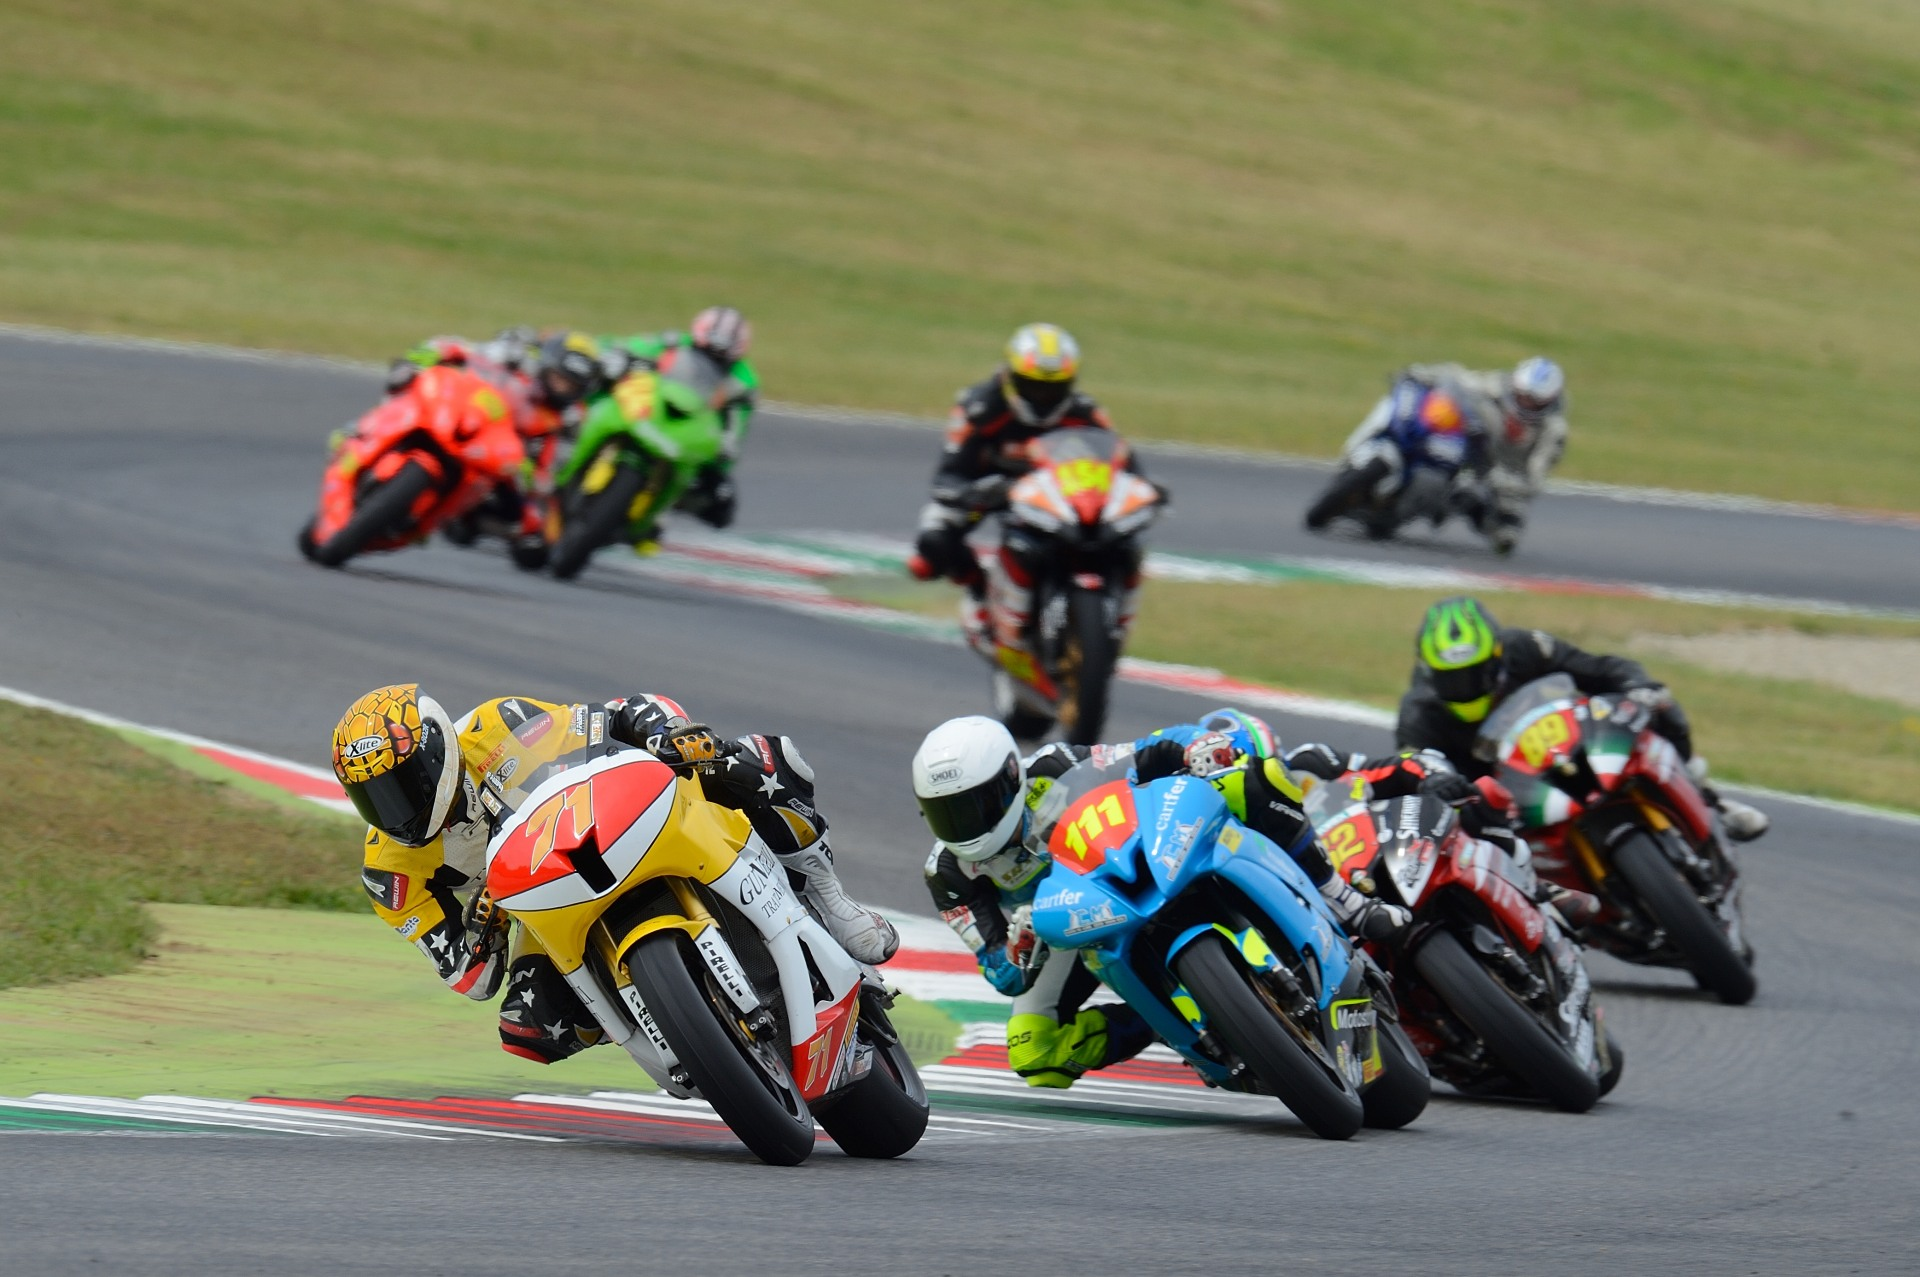 Twelve Racing – CIV 2015 - Risultati qualifiche e gare al Mugello